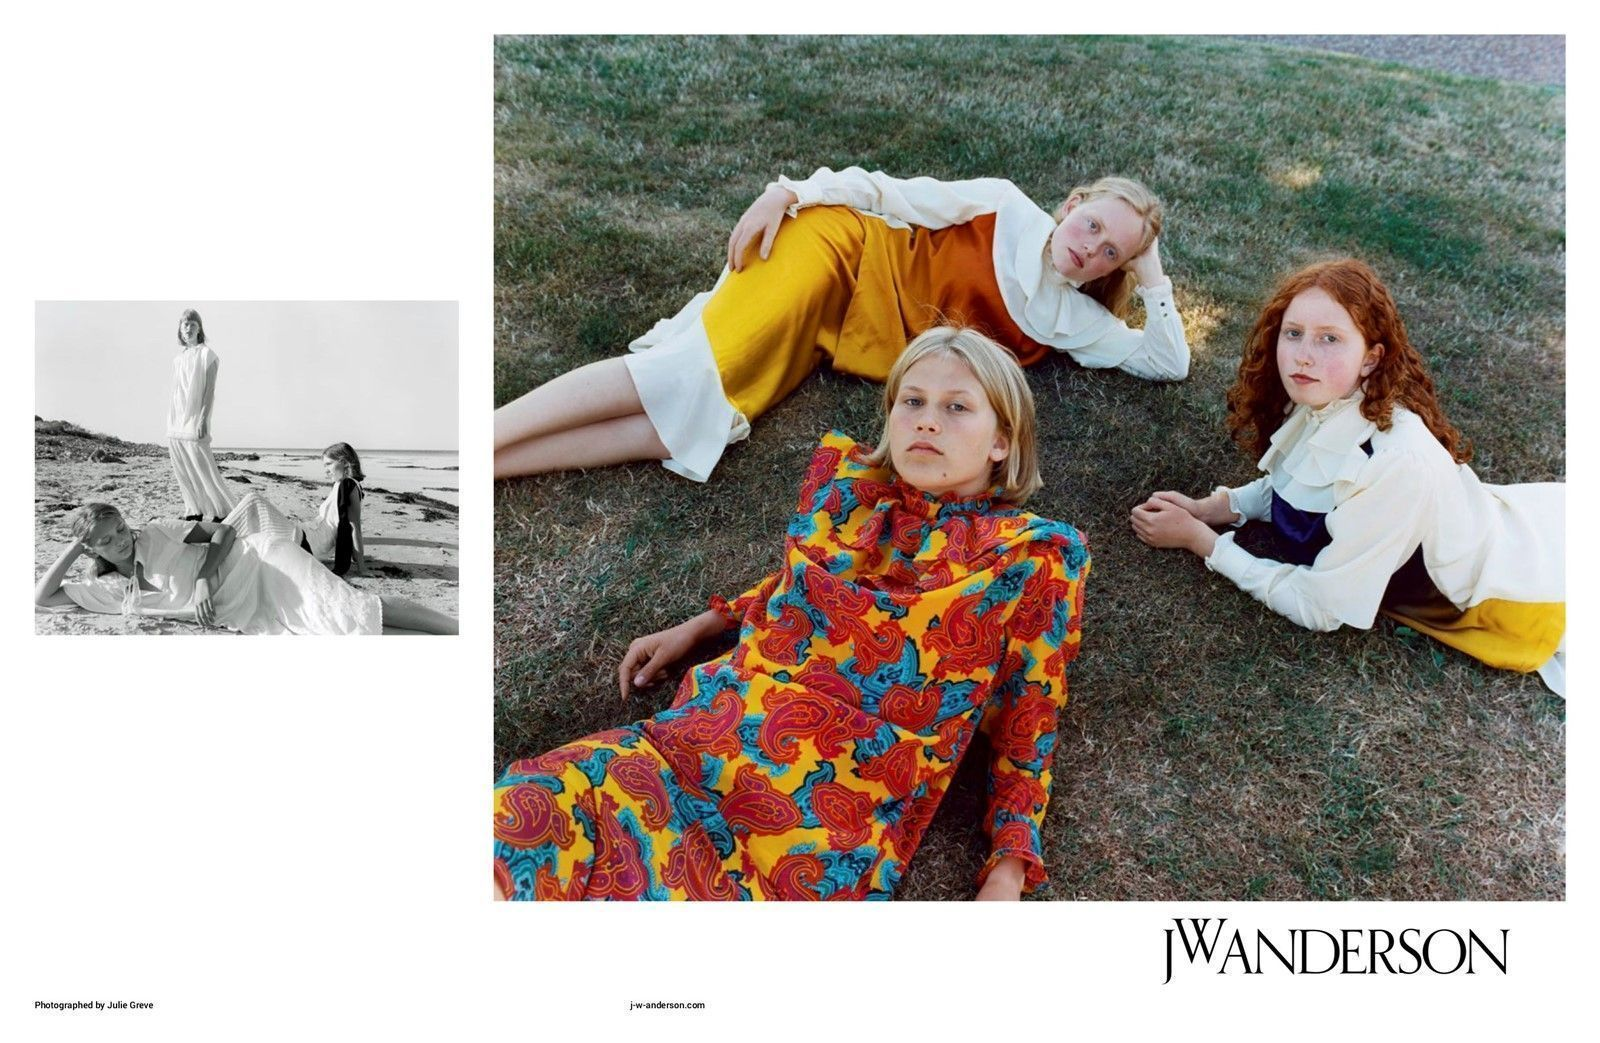 JW Anderson AW18 | Photography Photography Julie Greve